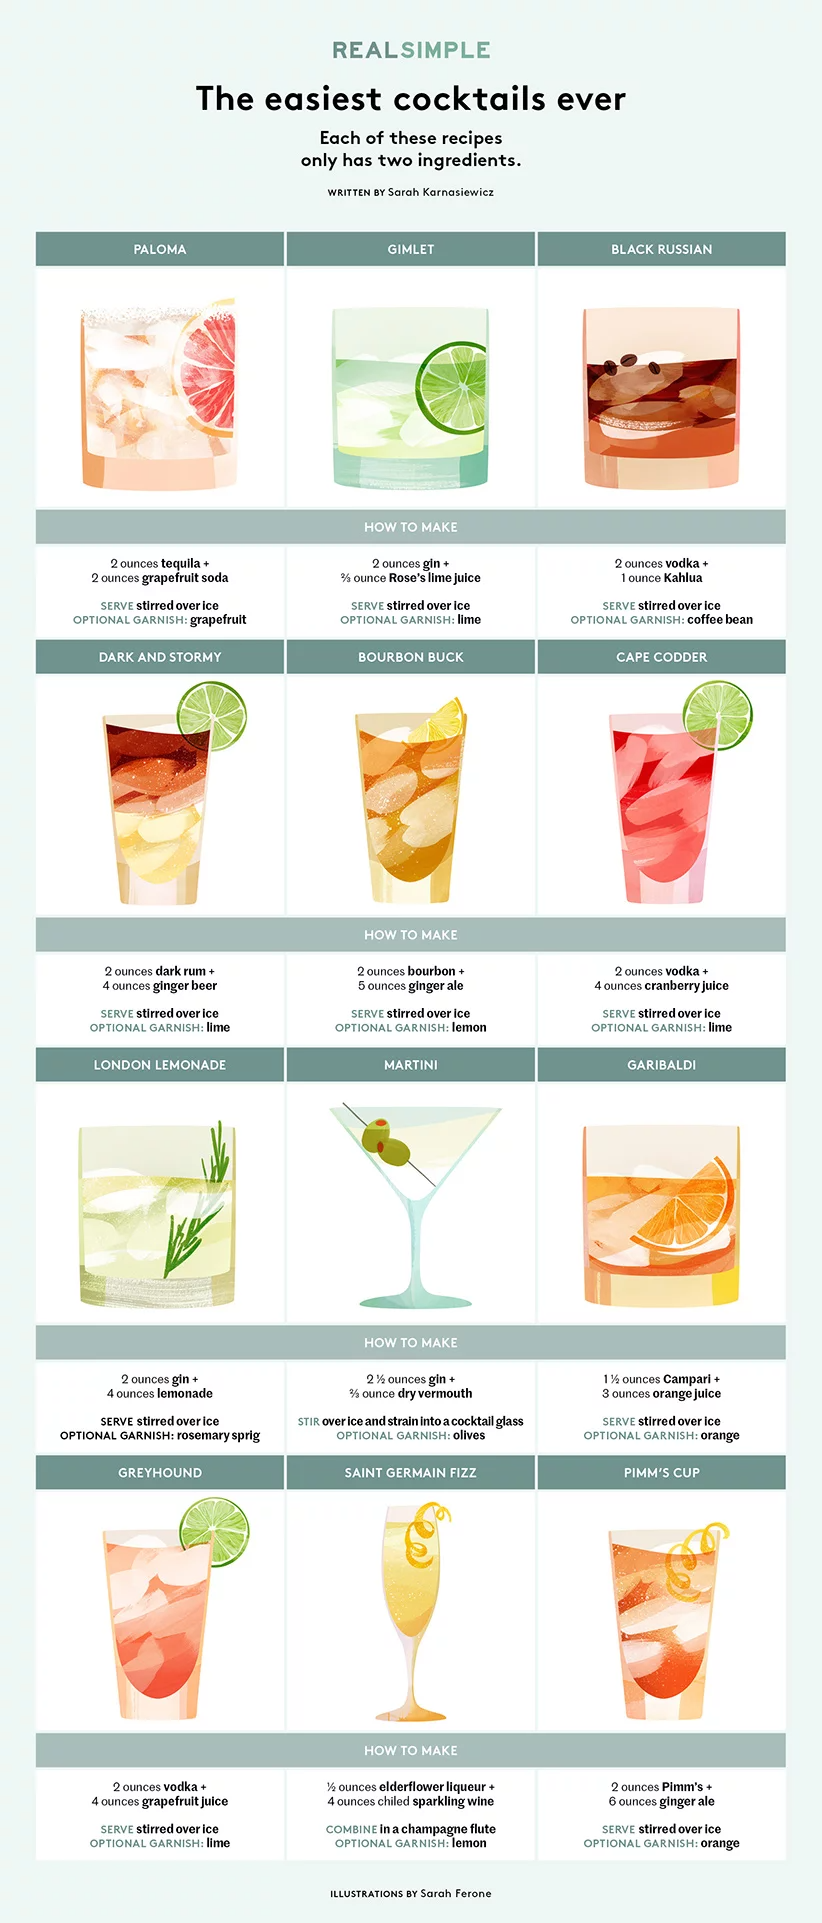 How to Make 12 Easy Cocktails With Just 2 Ingredients—Because, Quarantine